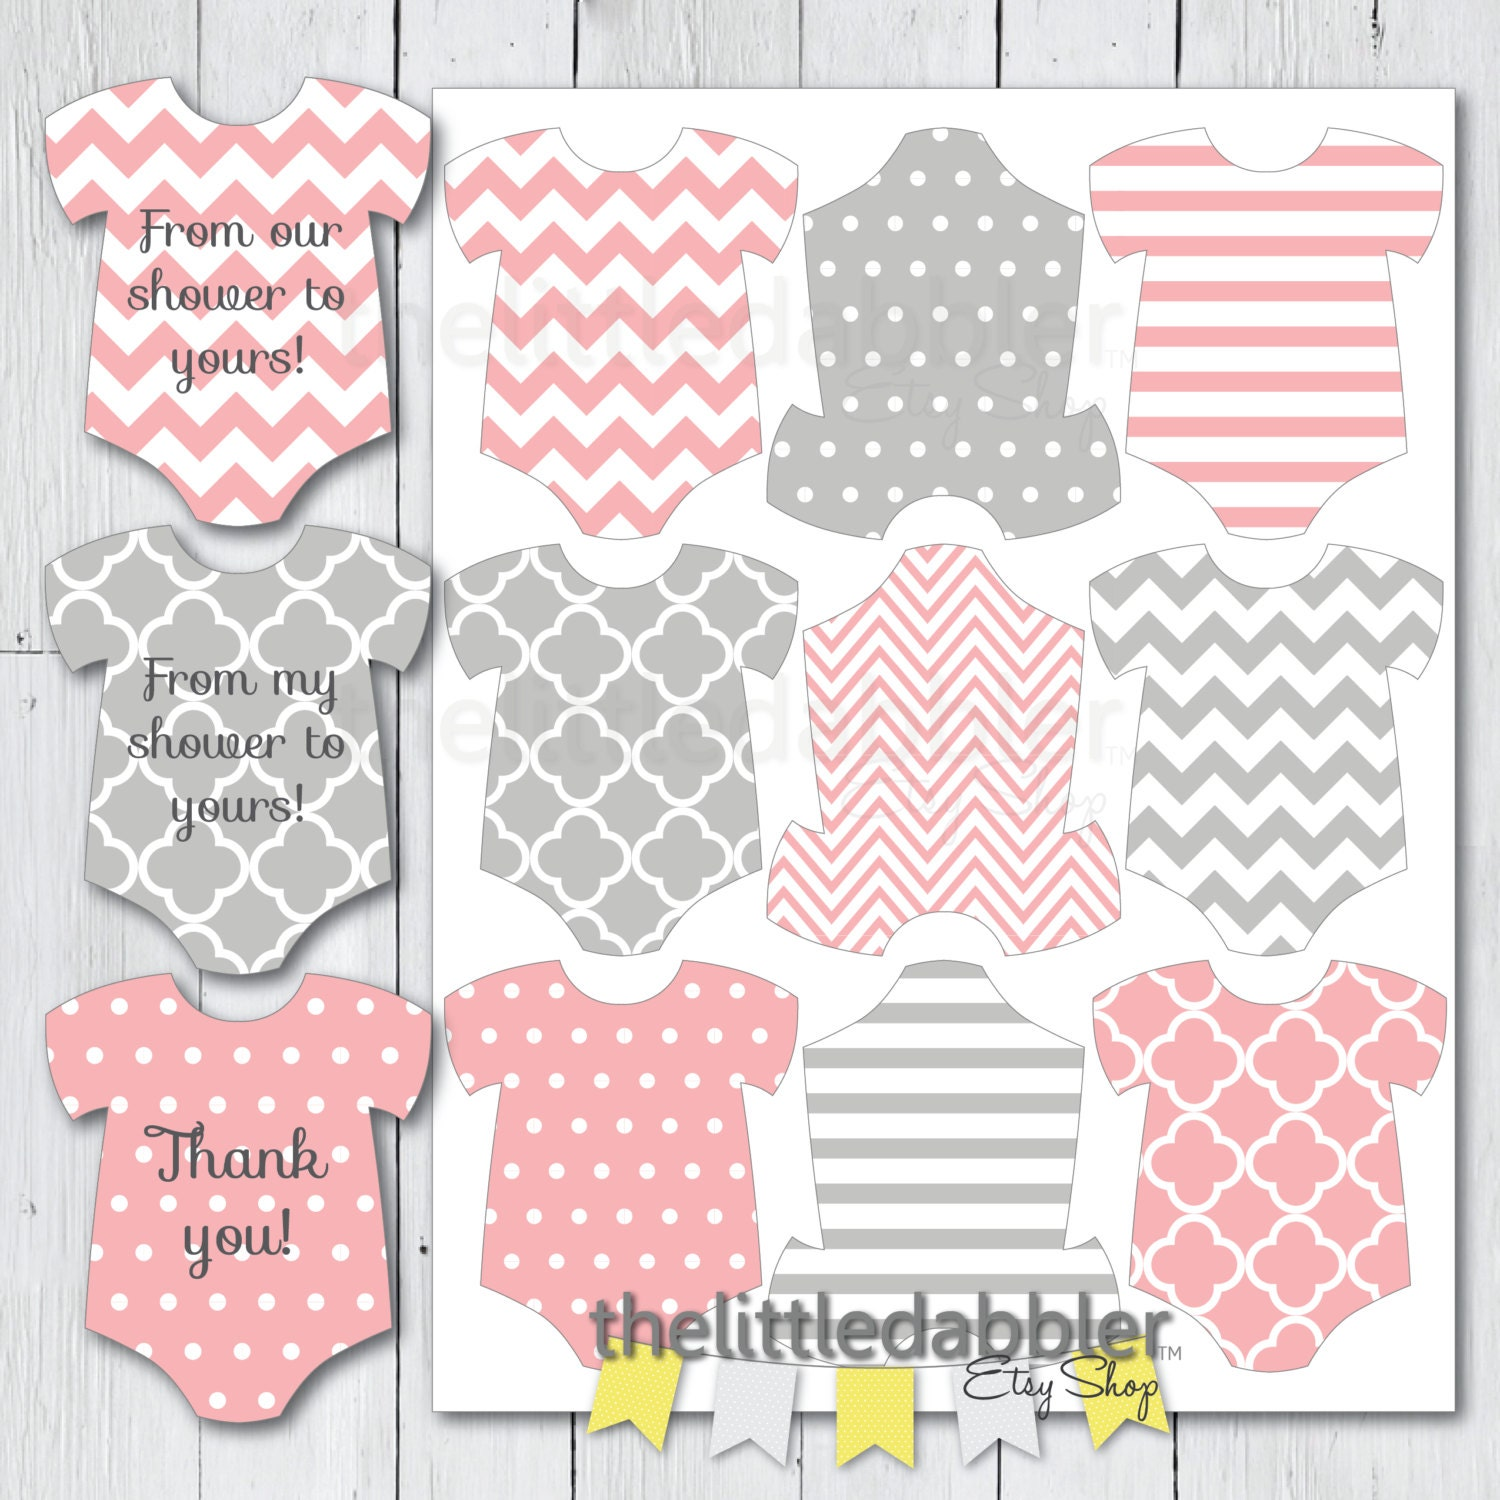 This is an image of Adaptable Free Printable Baby Shower Favor Tags Template